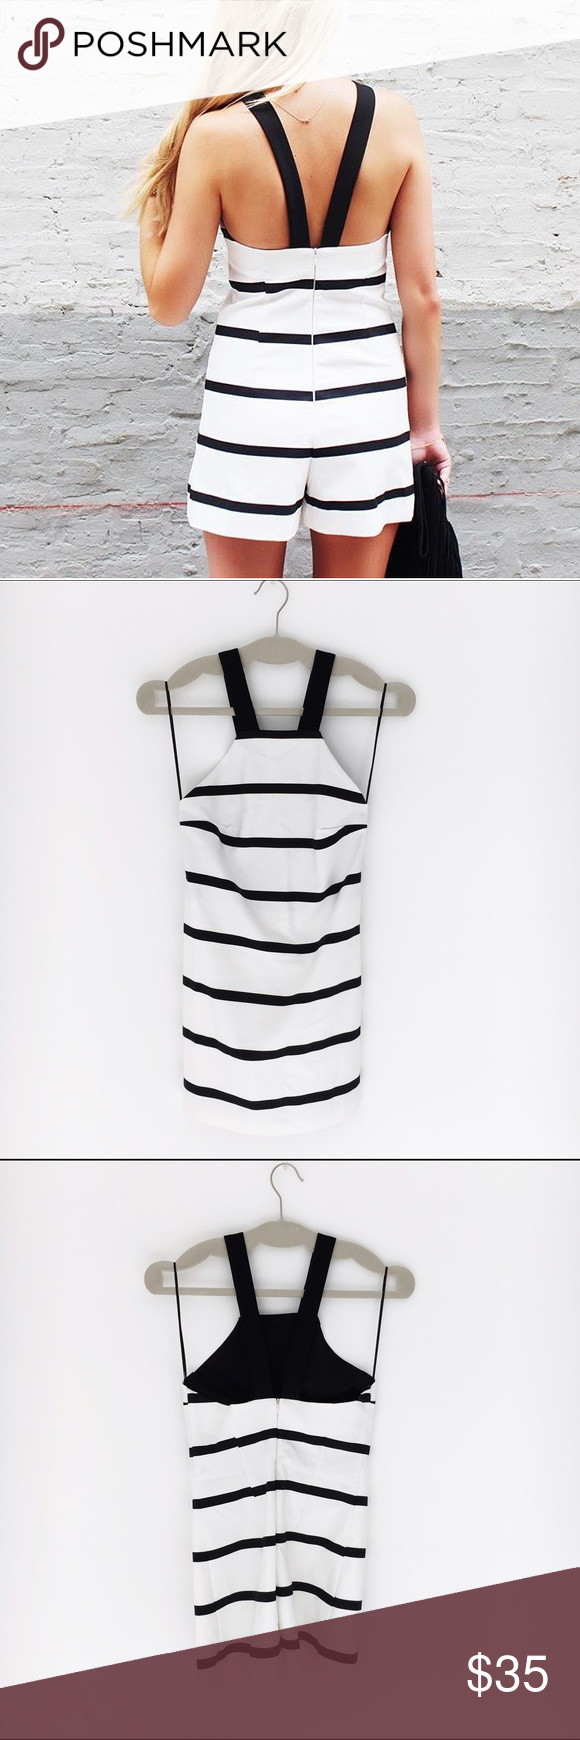 d31d226dac4 Nautical Playsuit by Zara Striped romper in black and white by Zara! Size XS